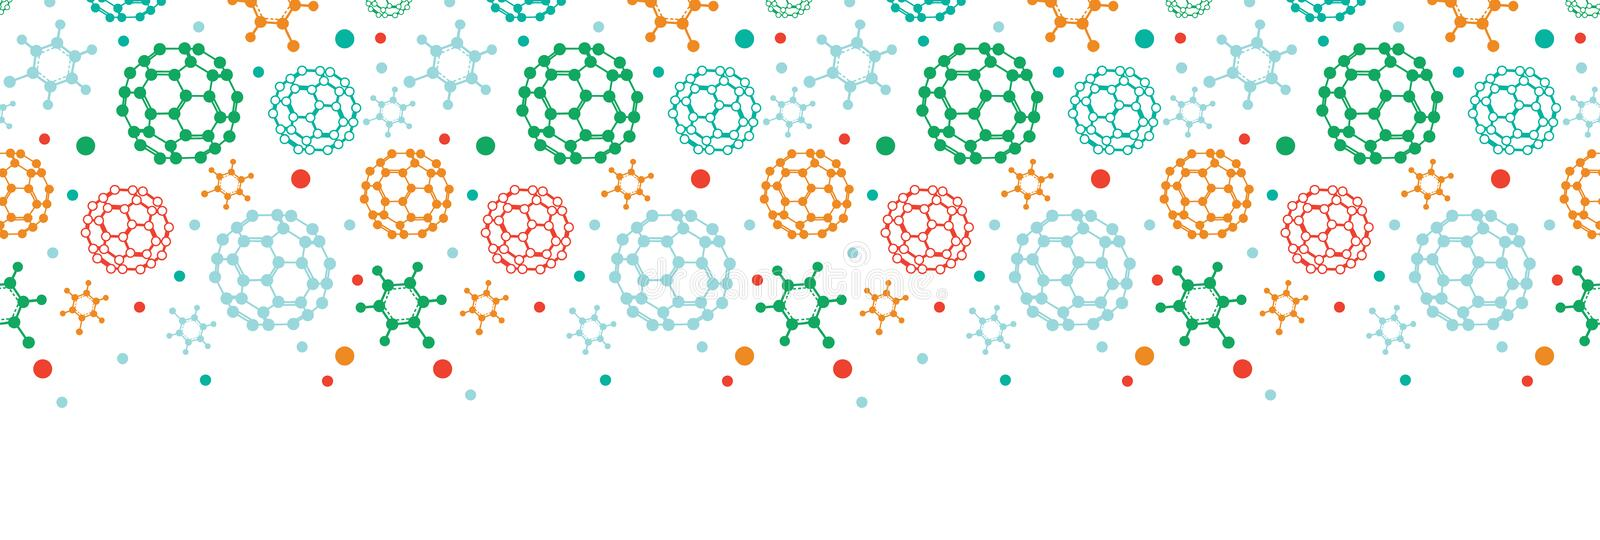 Colorful Molecules Horizontal Seamless Pattern Royalty Free Stock Photography